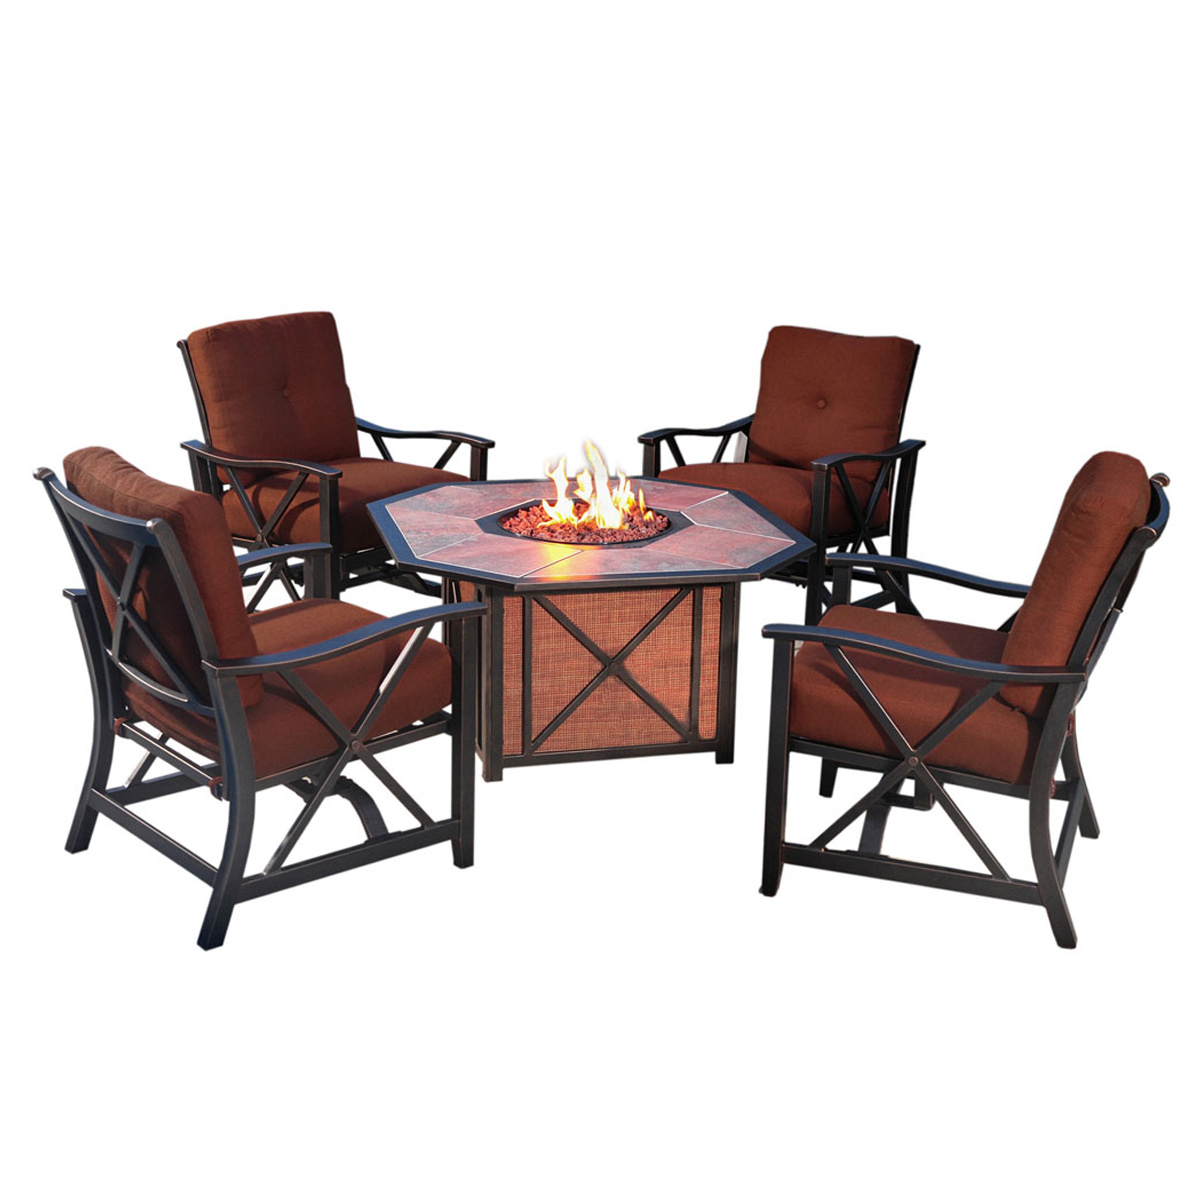 Agio Haywood 5 Piece Fire Pit Set With 4 Spring Chairs And 1 Gas Fire Pit  With Tile Top